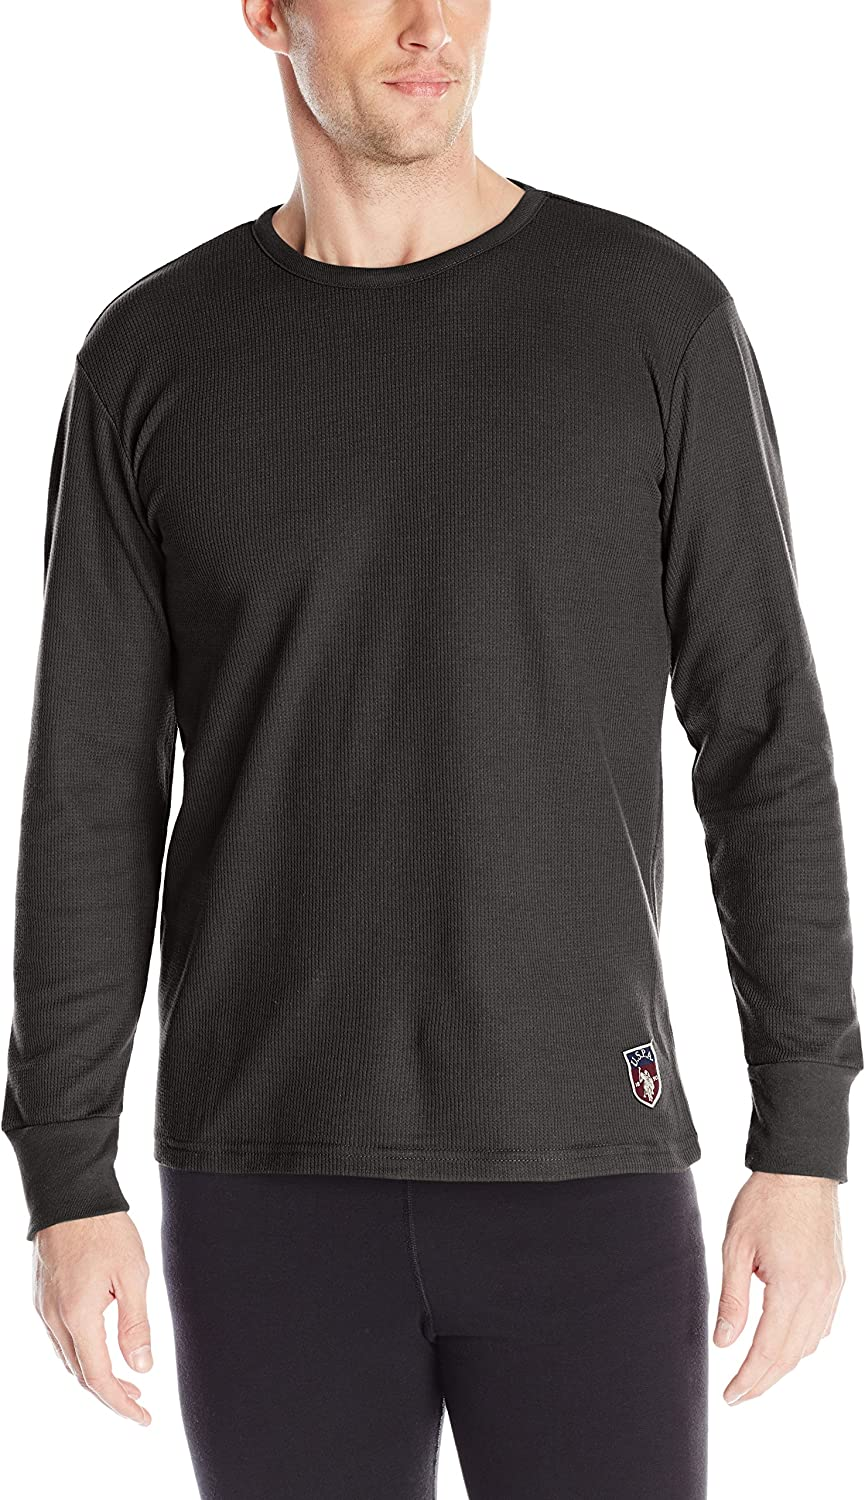 0894bb6ab931 POLO Mens Long Sleeve Crew Neck Thermal Shirt, Black, Large U.S. ...